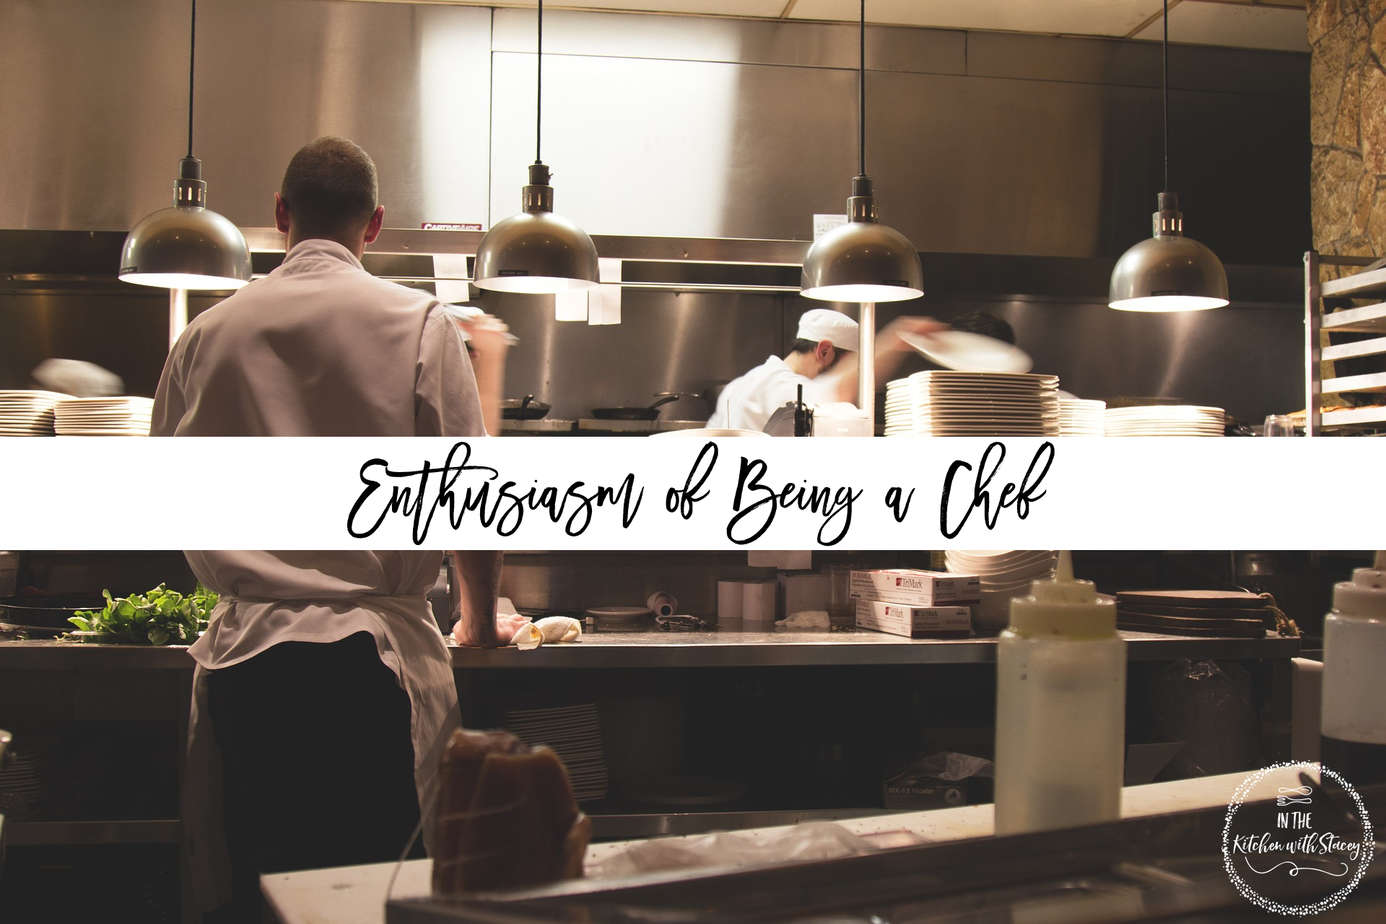 enthusiasm of being a chef